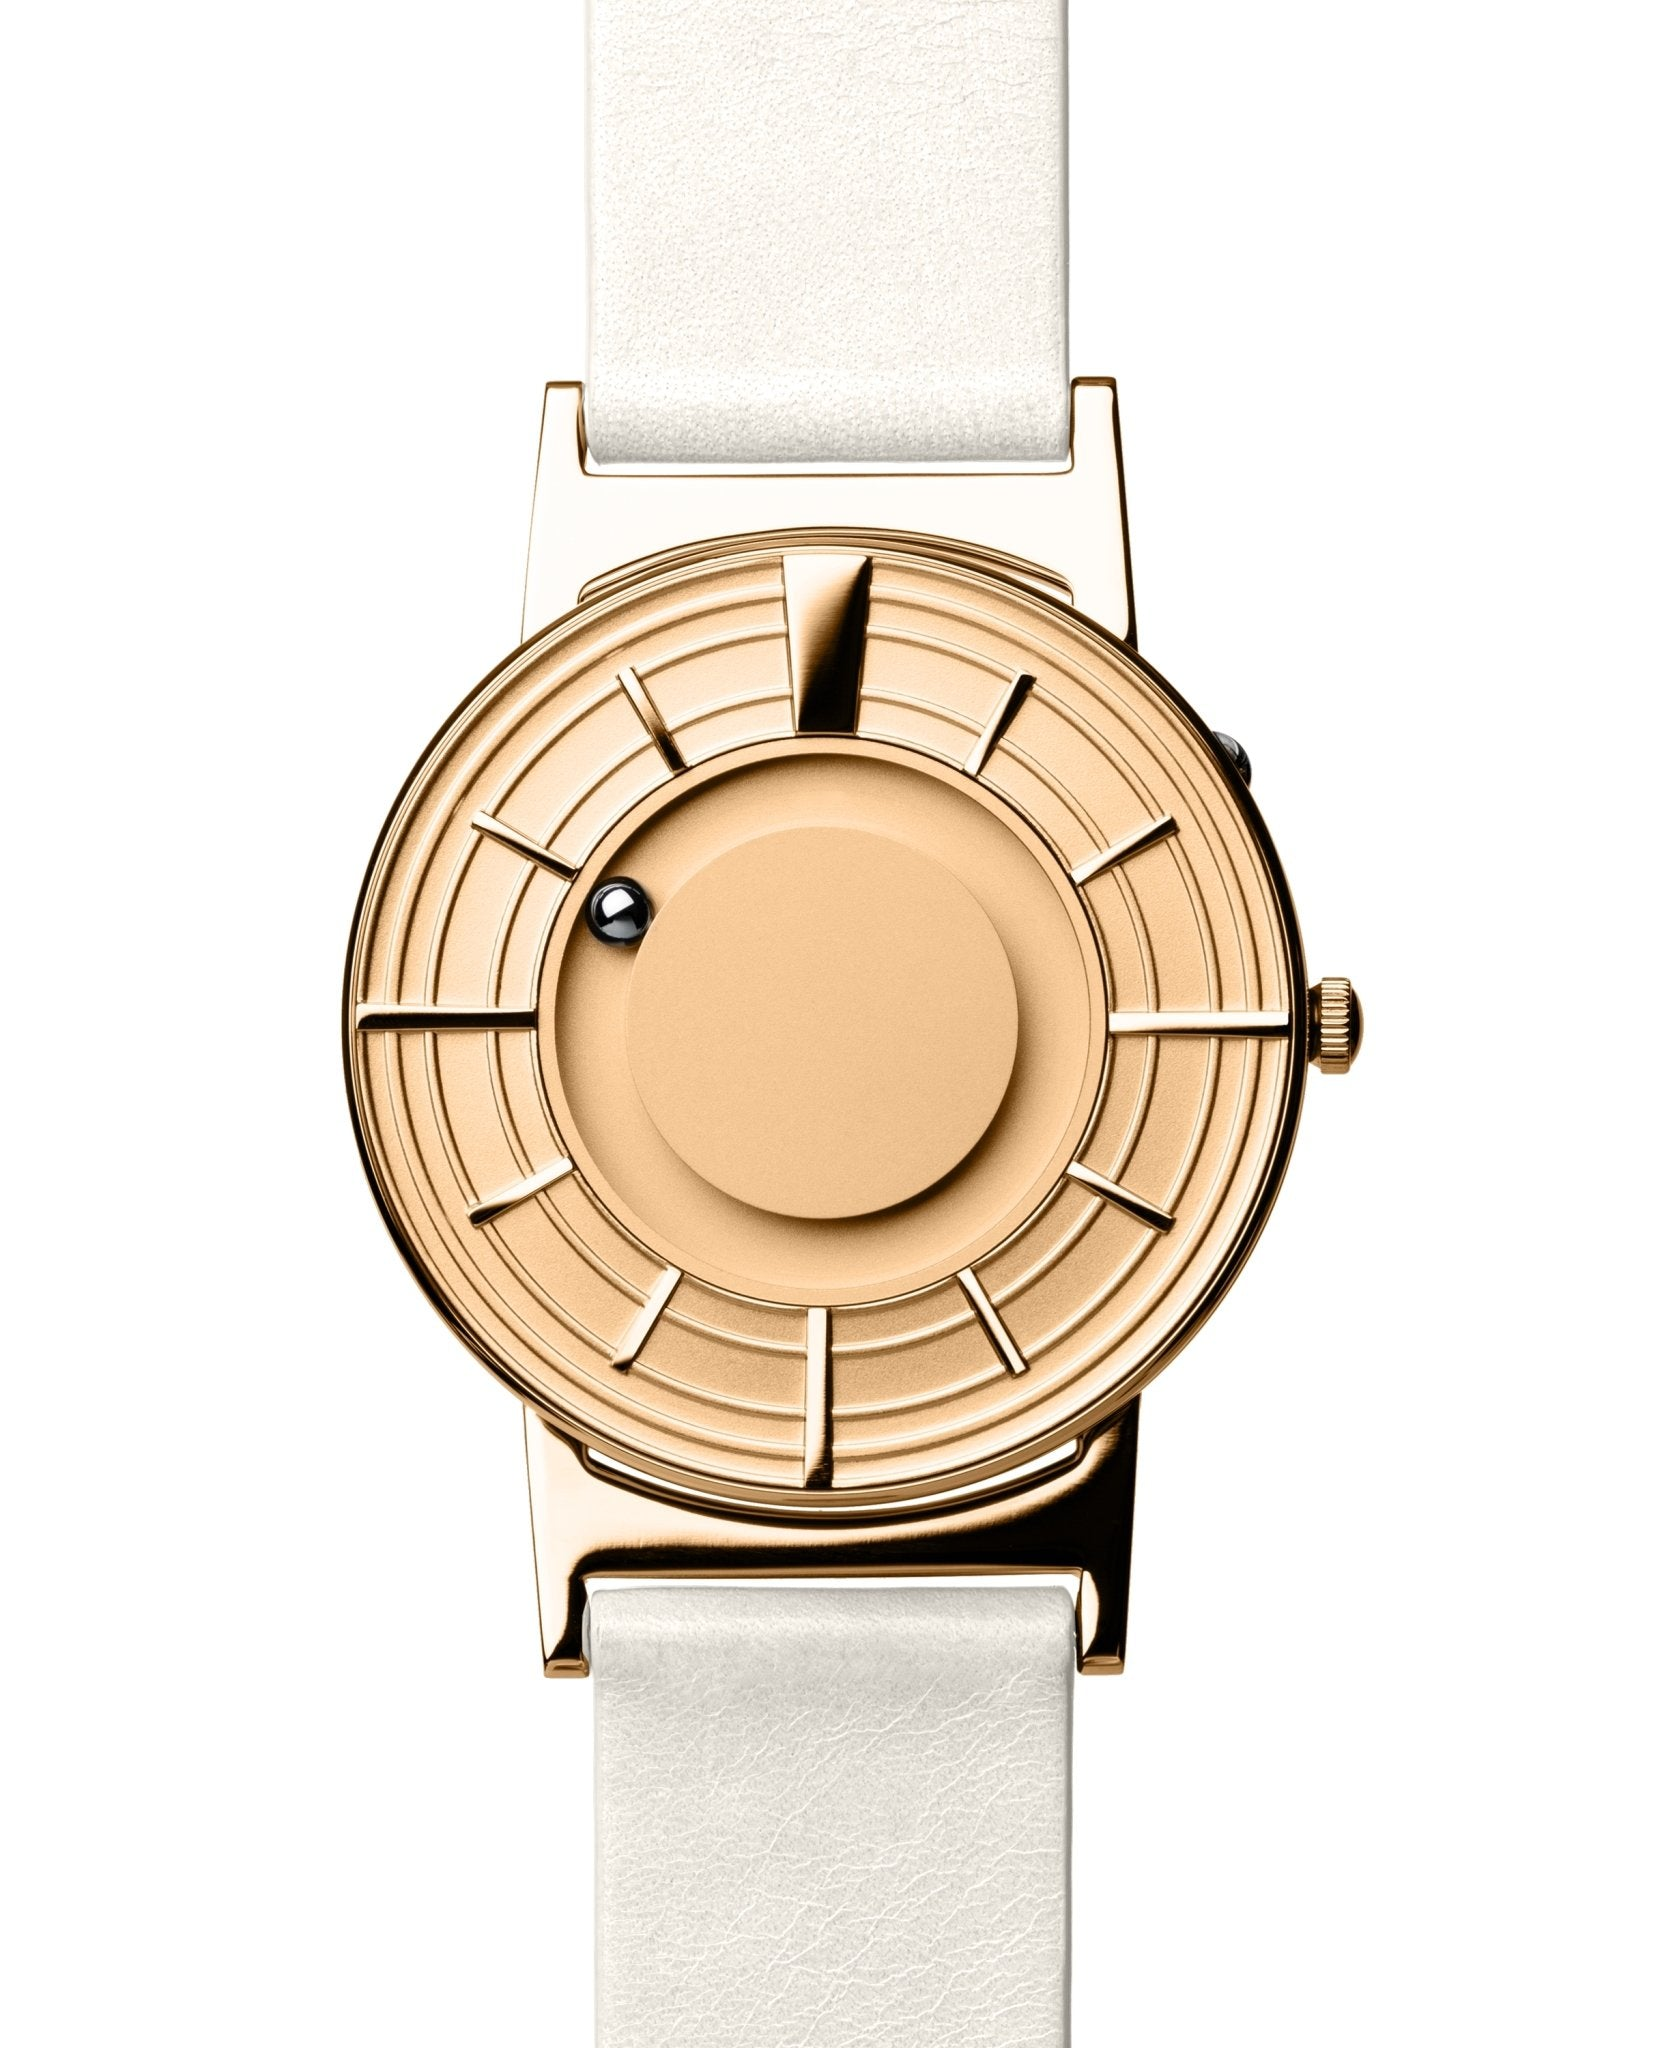 Eone Bradley Edge Rose Gold - Watches & Crystals